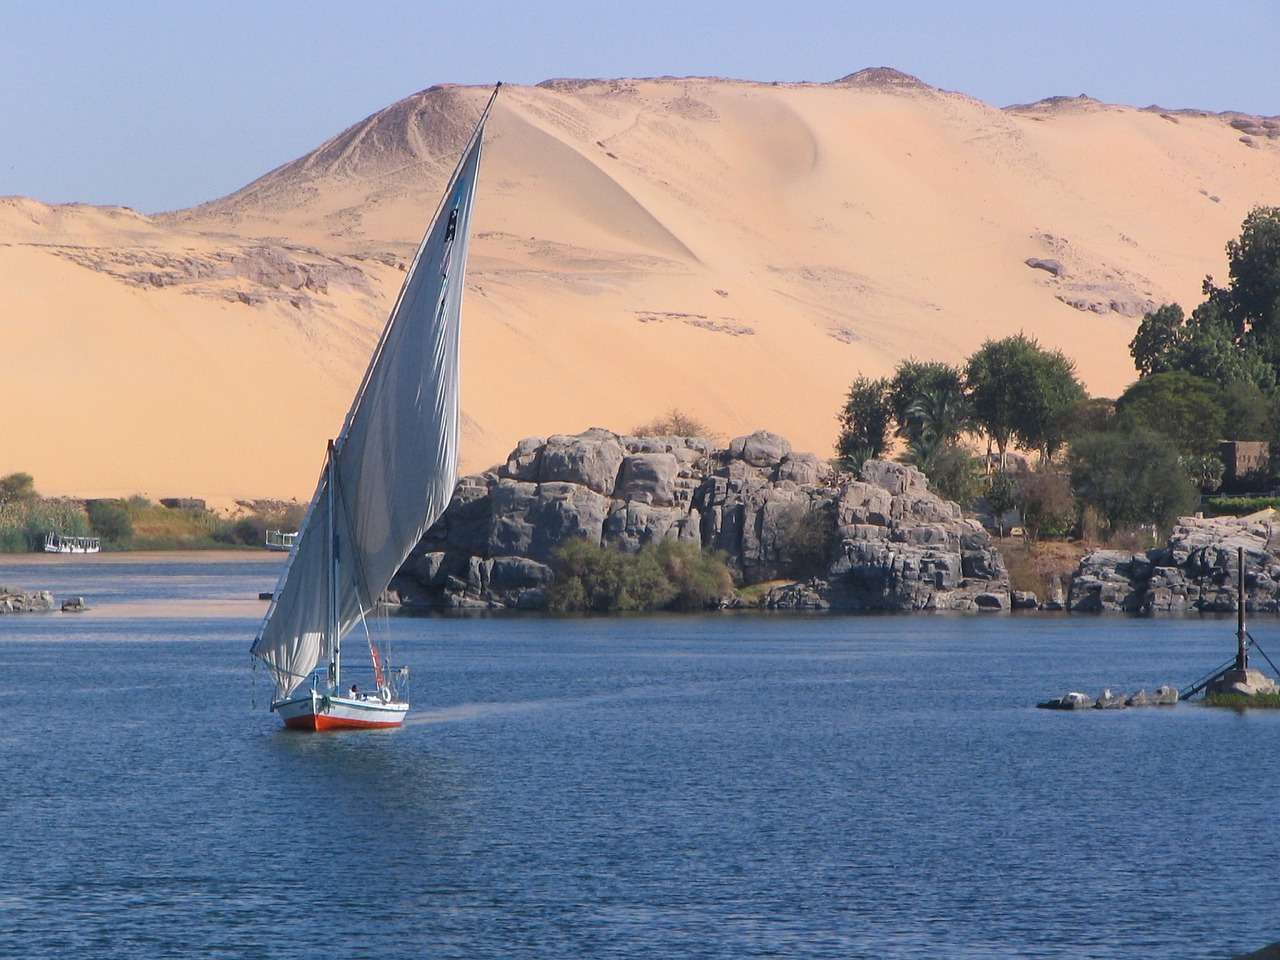 Nile - Destinations to Explore History in Africa and Middle East